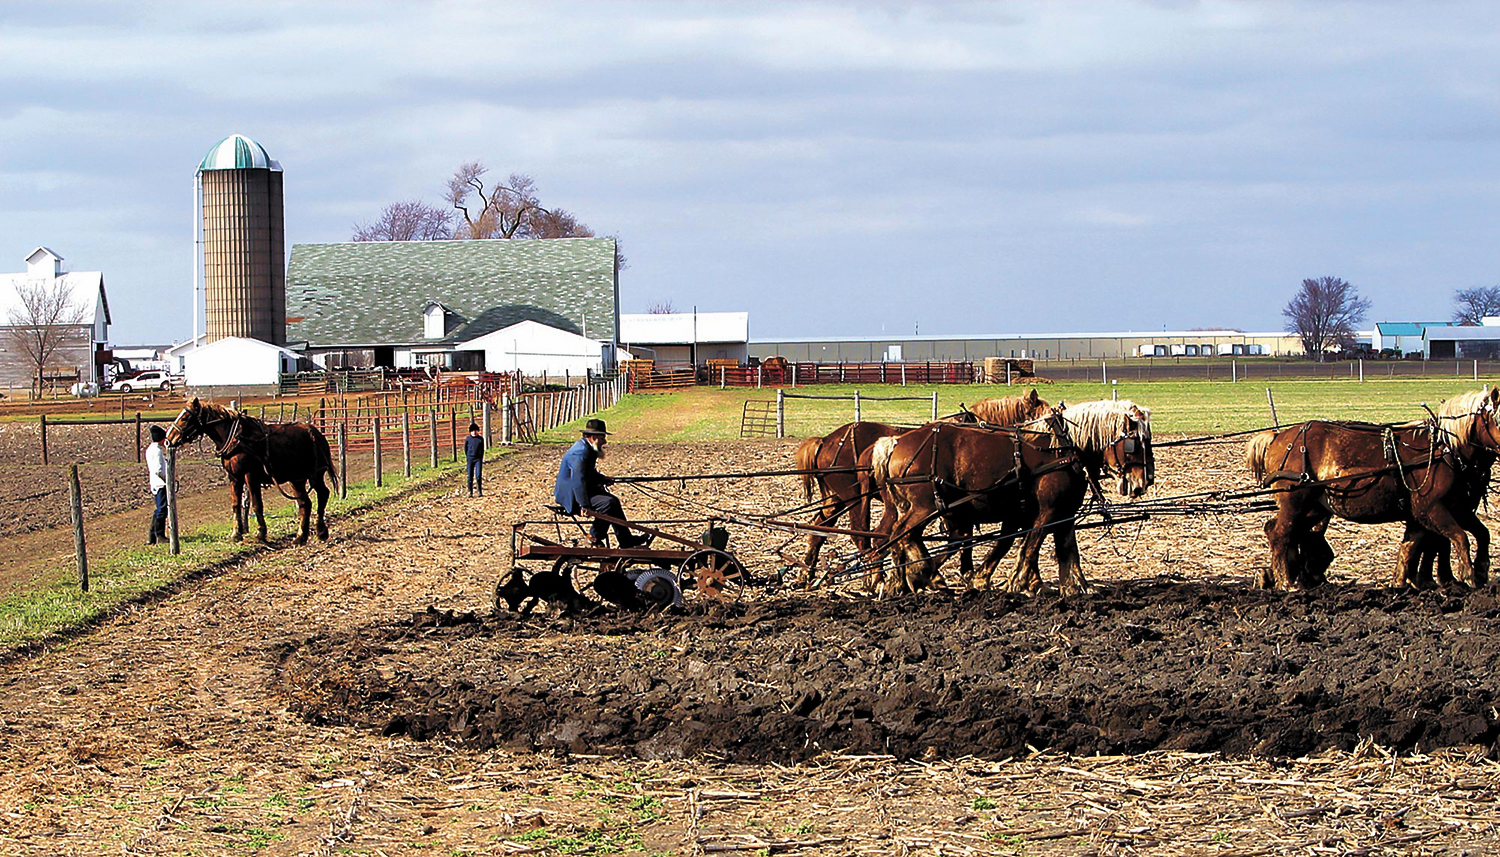 """Spring plowing with Belgian draft horses south of Arthur at an Amish farm, made their plain and simple life of peace, hard work and love of the soil a scene of tranquility."" [Bill Hagen/The State Journal-Register""]"